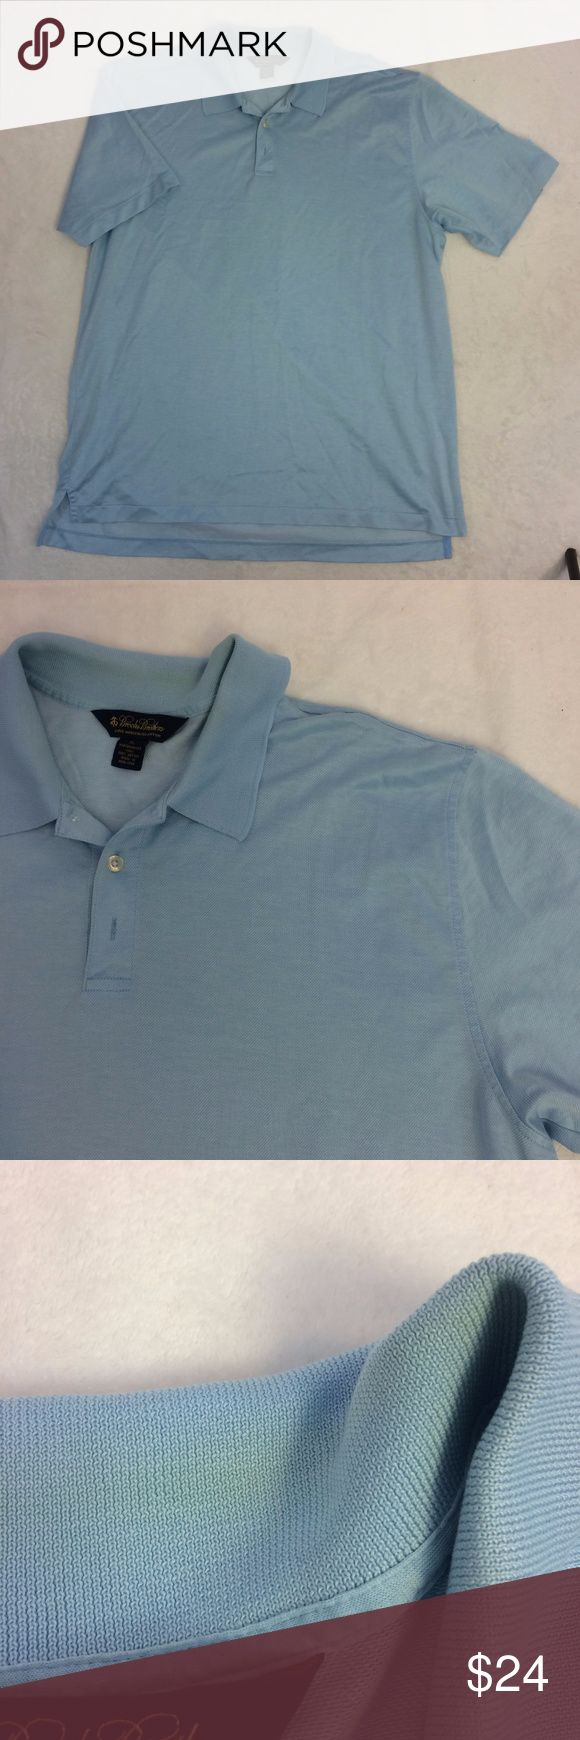 "[Brooks Brothers] Mercerized Cotton Button Up XL -Size x-large -Double mercerized cotton casual button down shirt -Collar style -Flaws: collar has some discolor on fold & slight stain on front (see photos) -100% cotton -Lightweight  -Light blue polo  Measurements: Pi to pit 25"" Waist 25"" Sleeve 11"" Length 31""  We are always open to reasonable offers on all of the items in our closet! Brooks Brothers Shirts Polos"